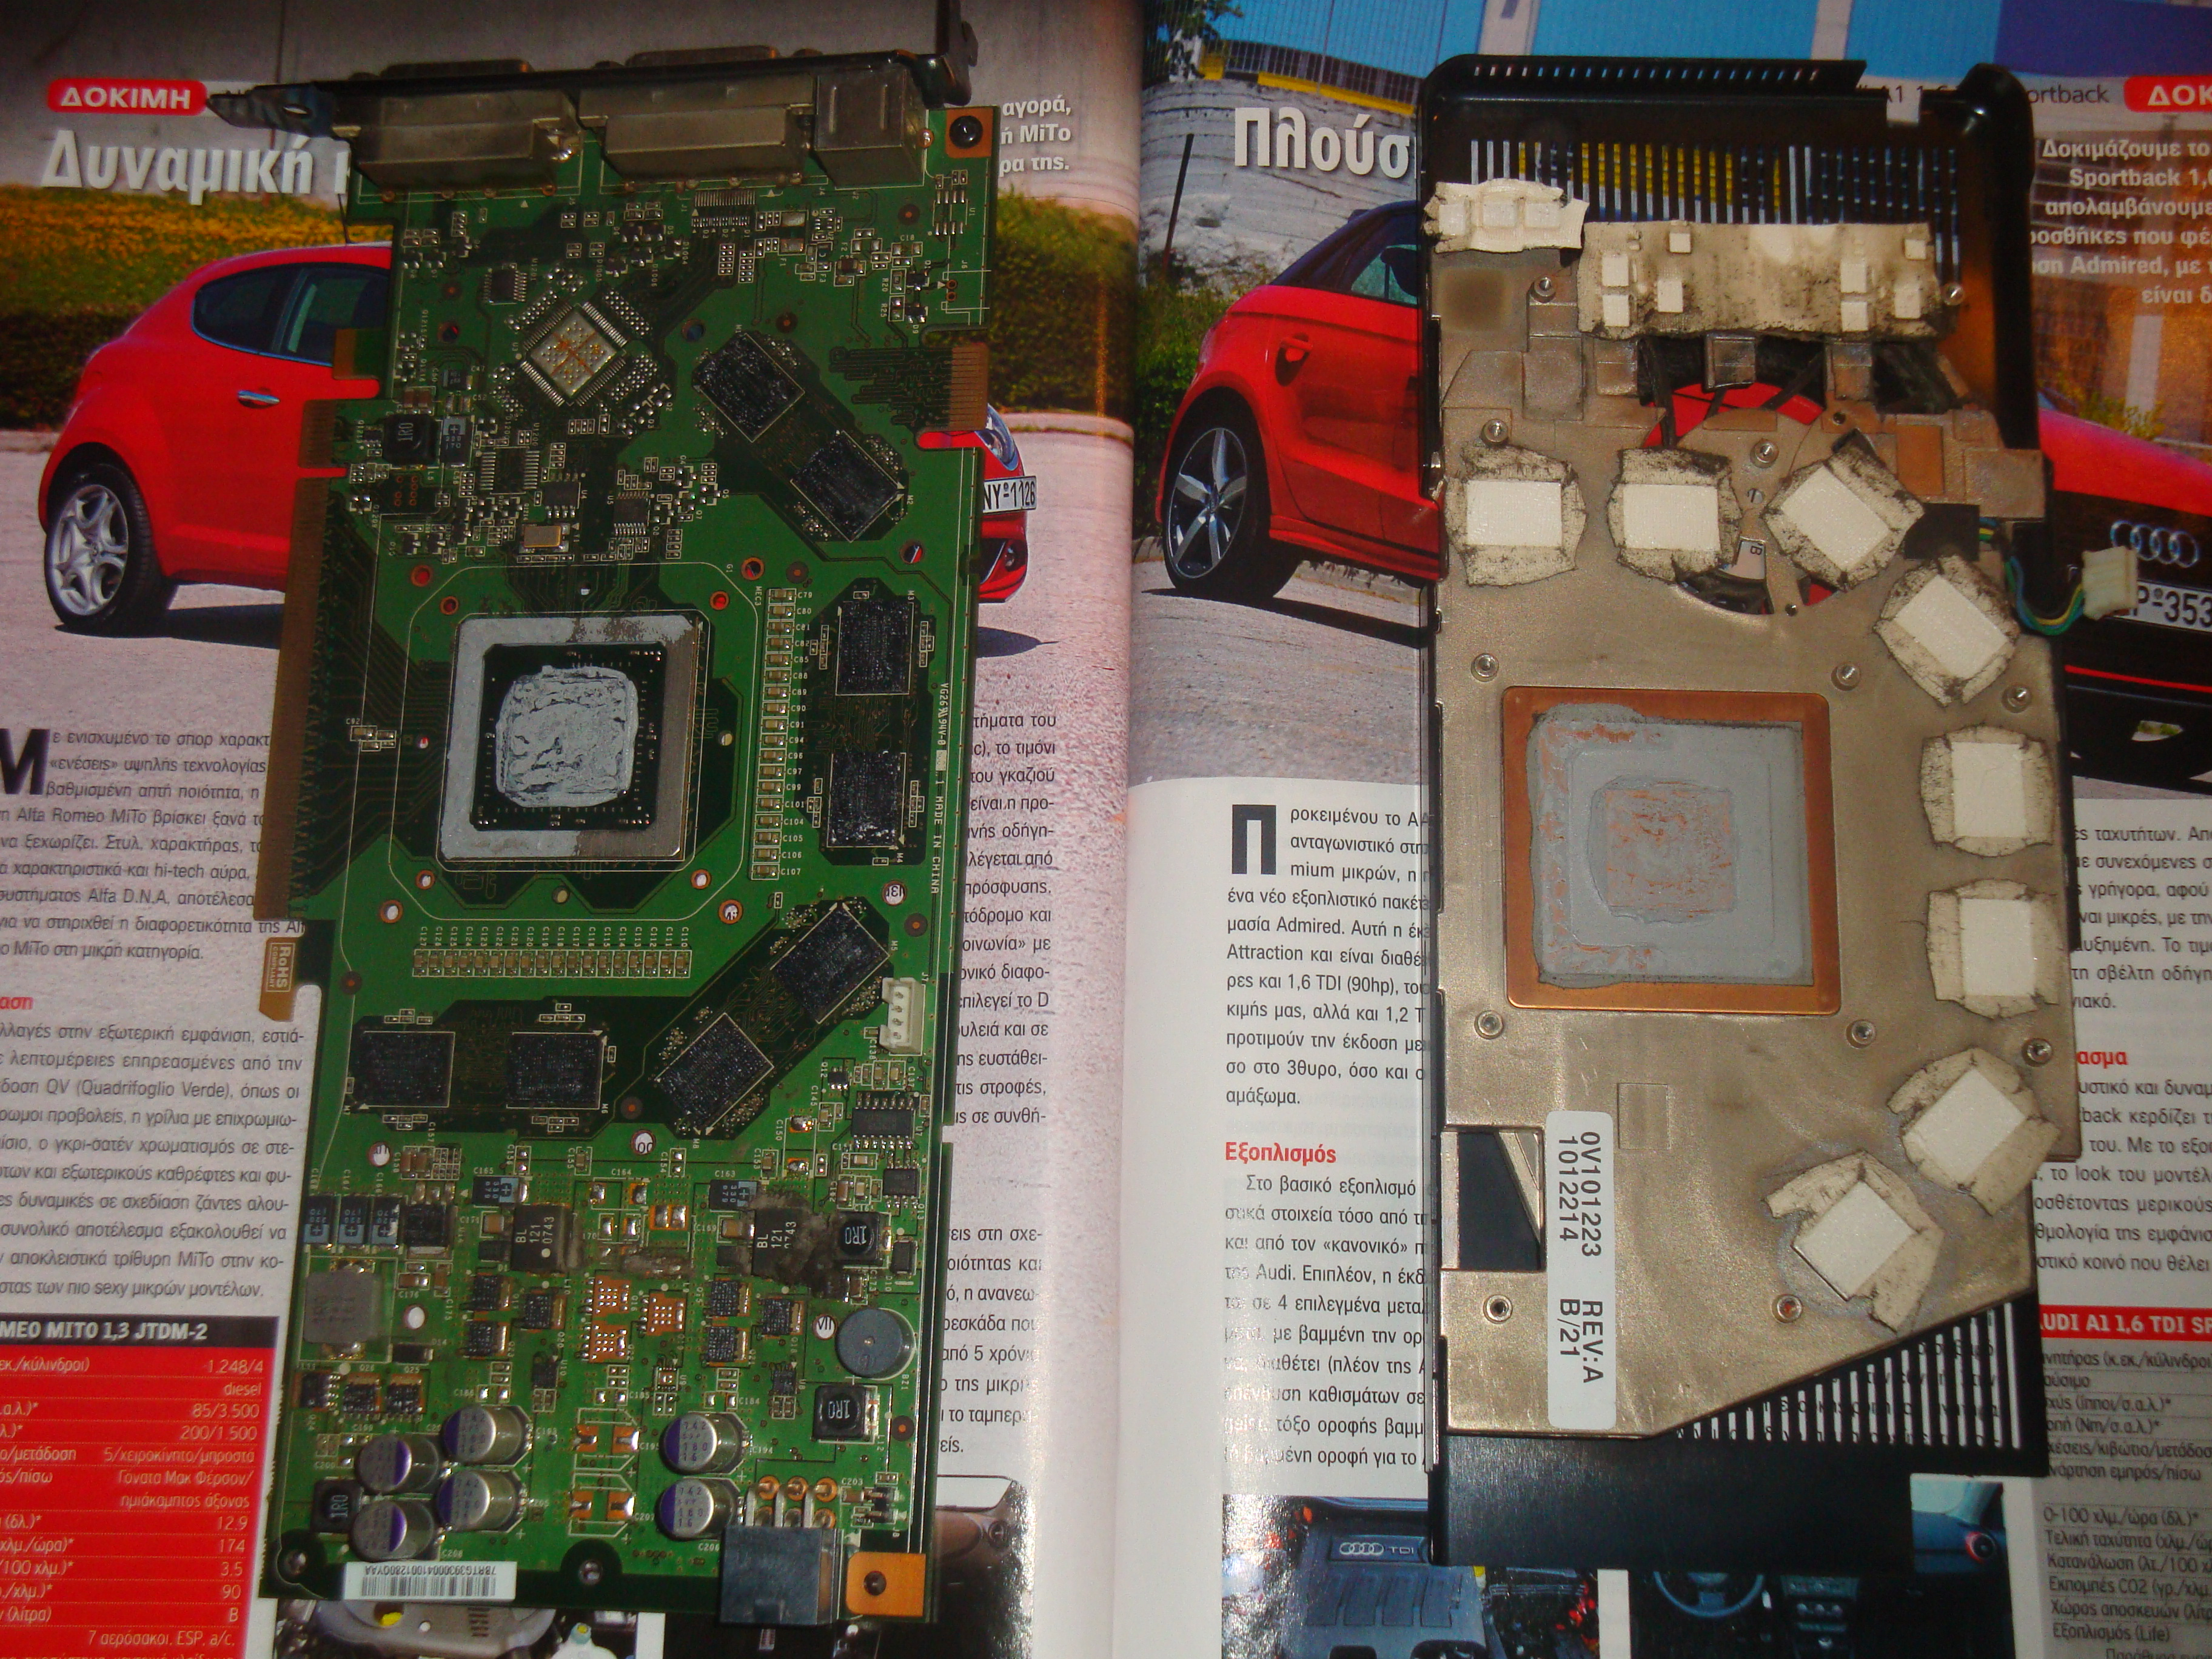 nvidia geforce 8800...taking a bath lets say...